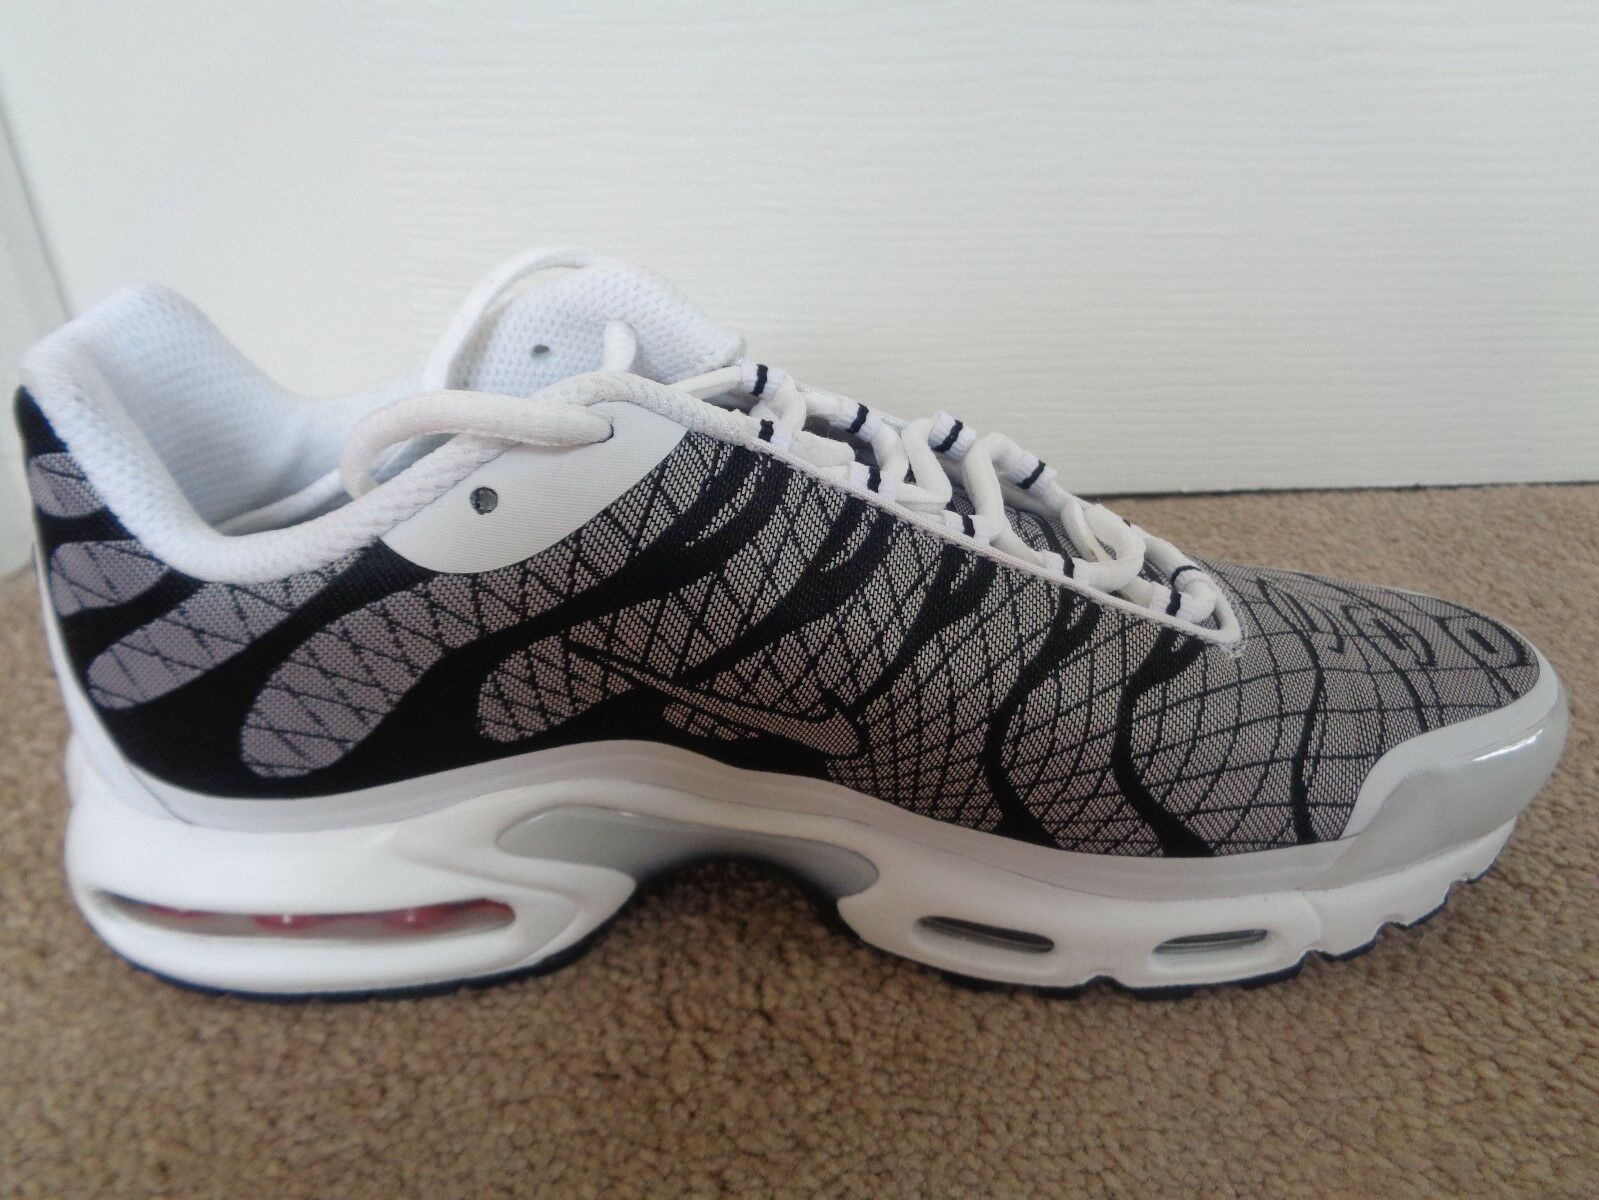 Nike Air max plus JCRD homme  trainers 7 Baskets 845006 100 uk 7 trainers eu 41 us 8 NEWBOX 767132